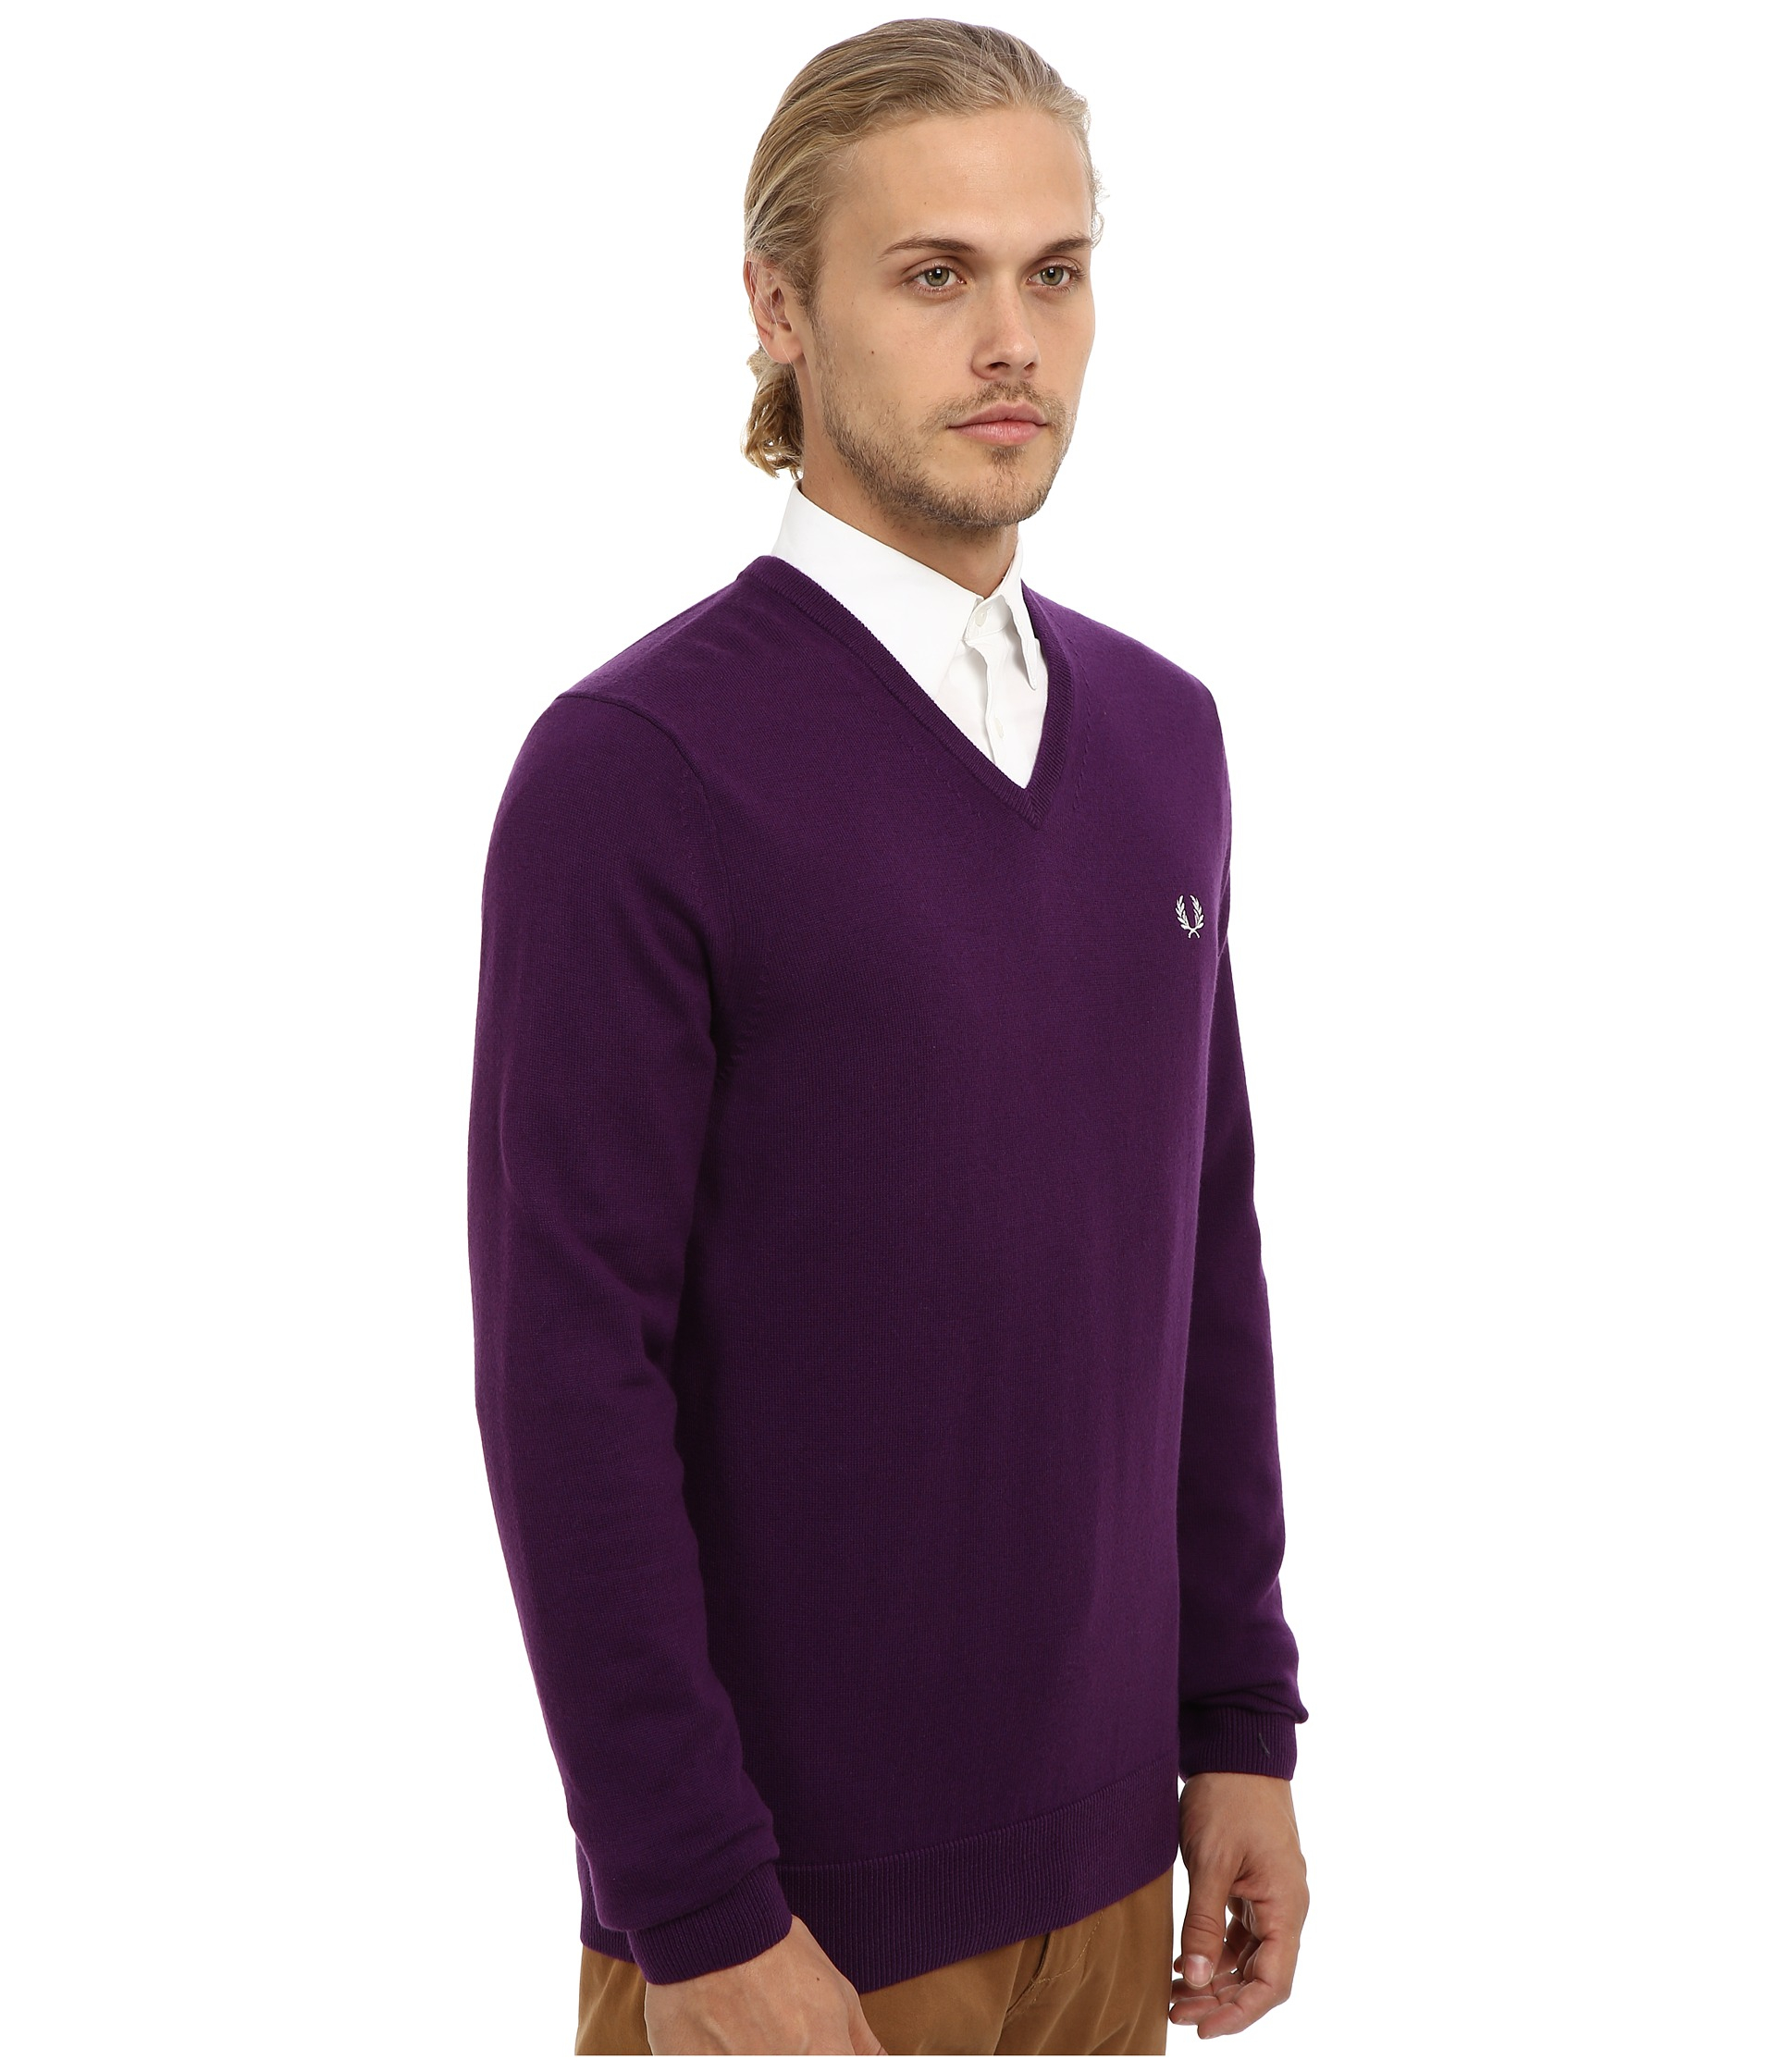 fred perry classic v neck sweater in purple for men lyst. Black Bedroom Furniture Sets. Home Design Ideas